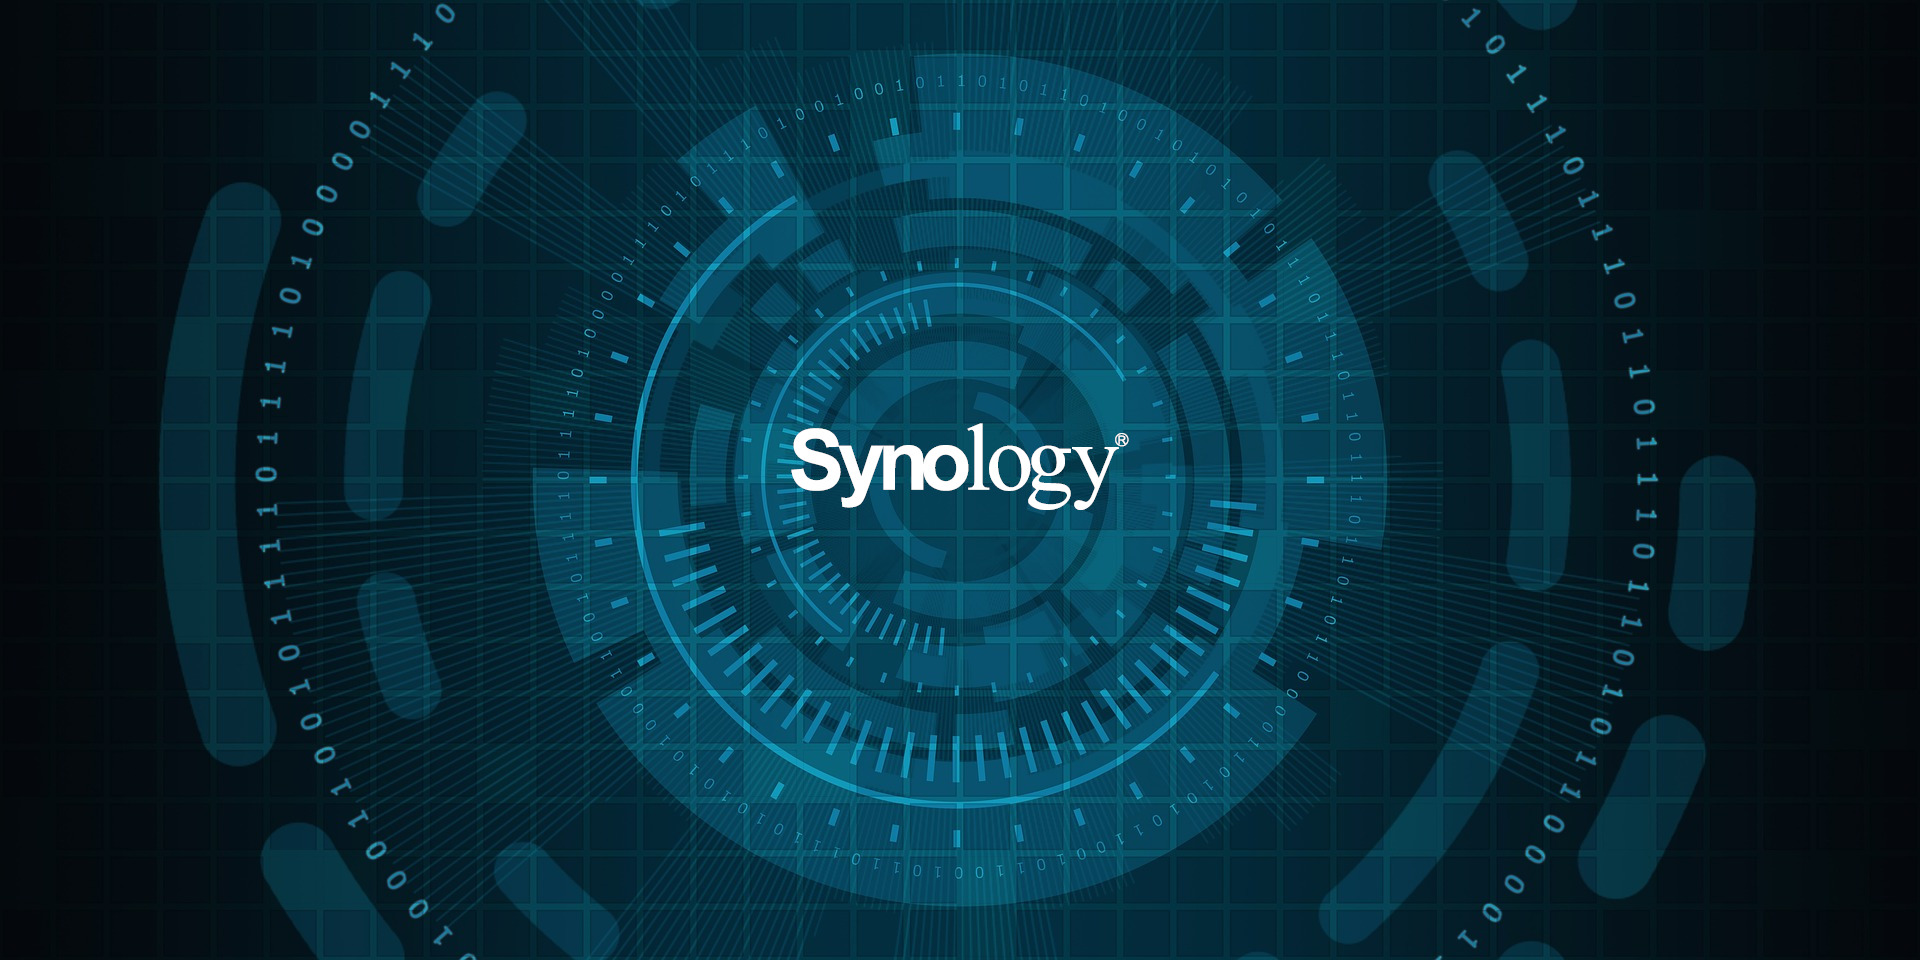 Synology Servicepartner